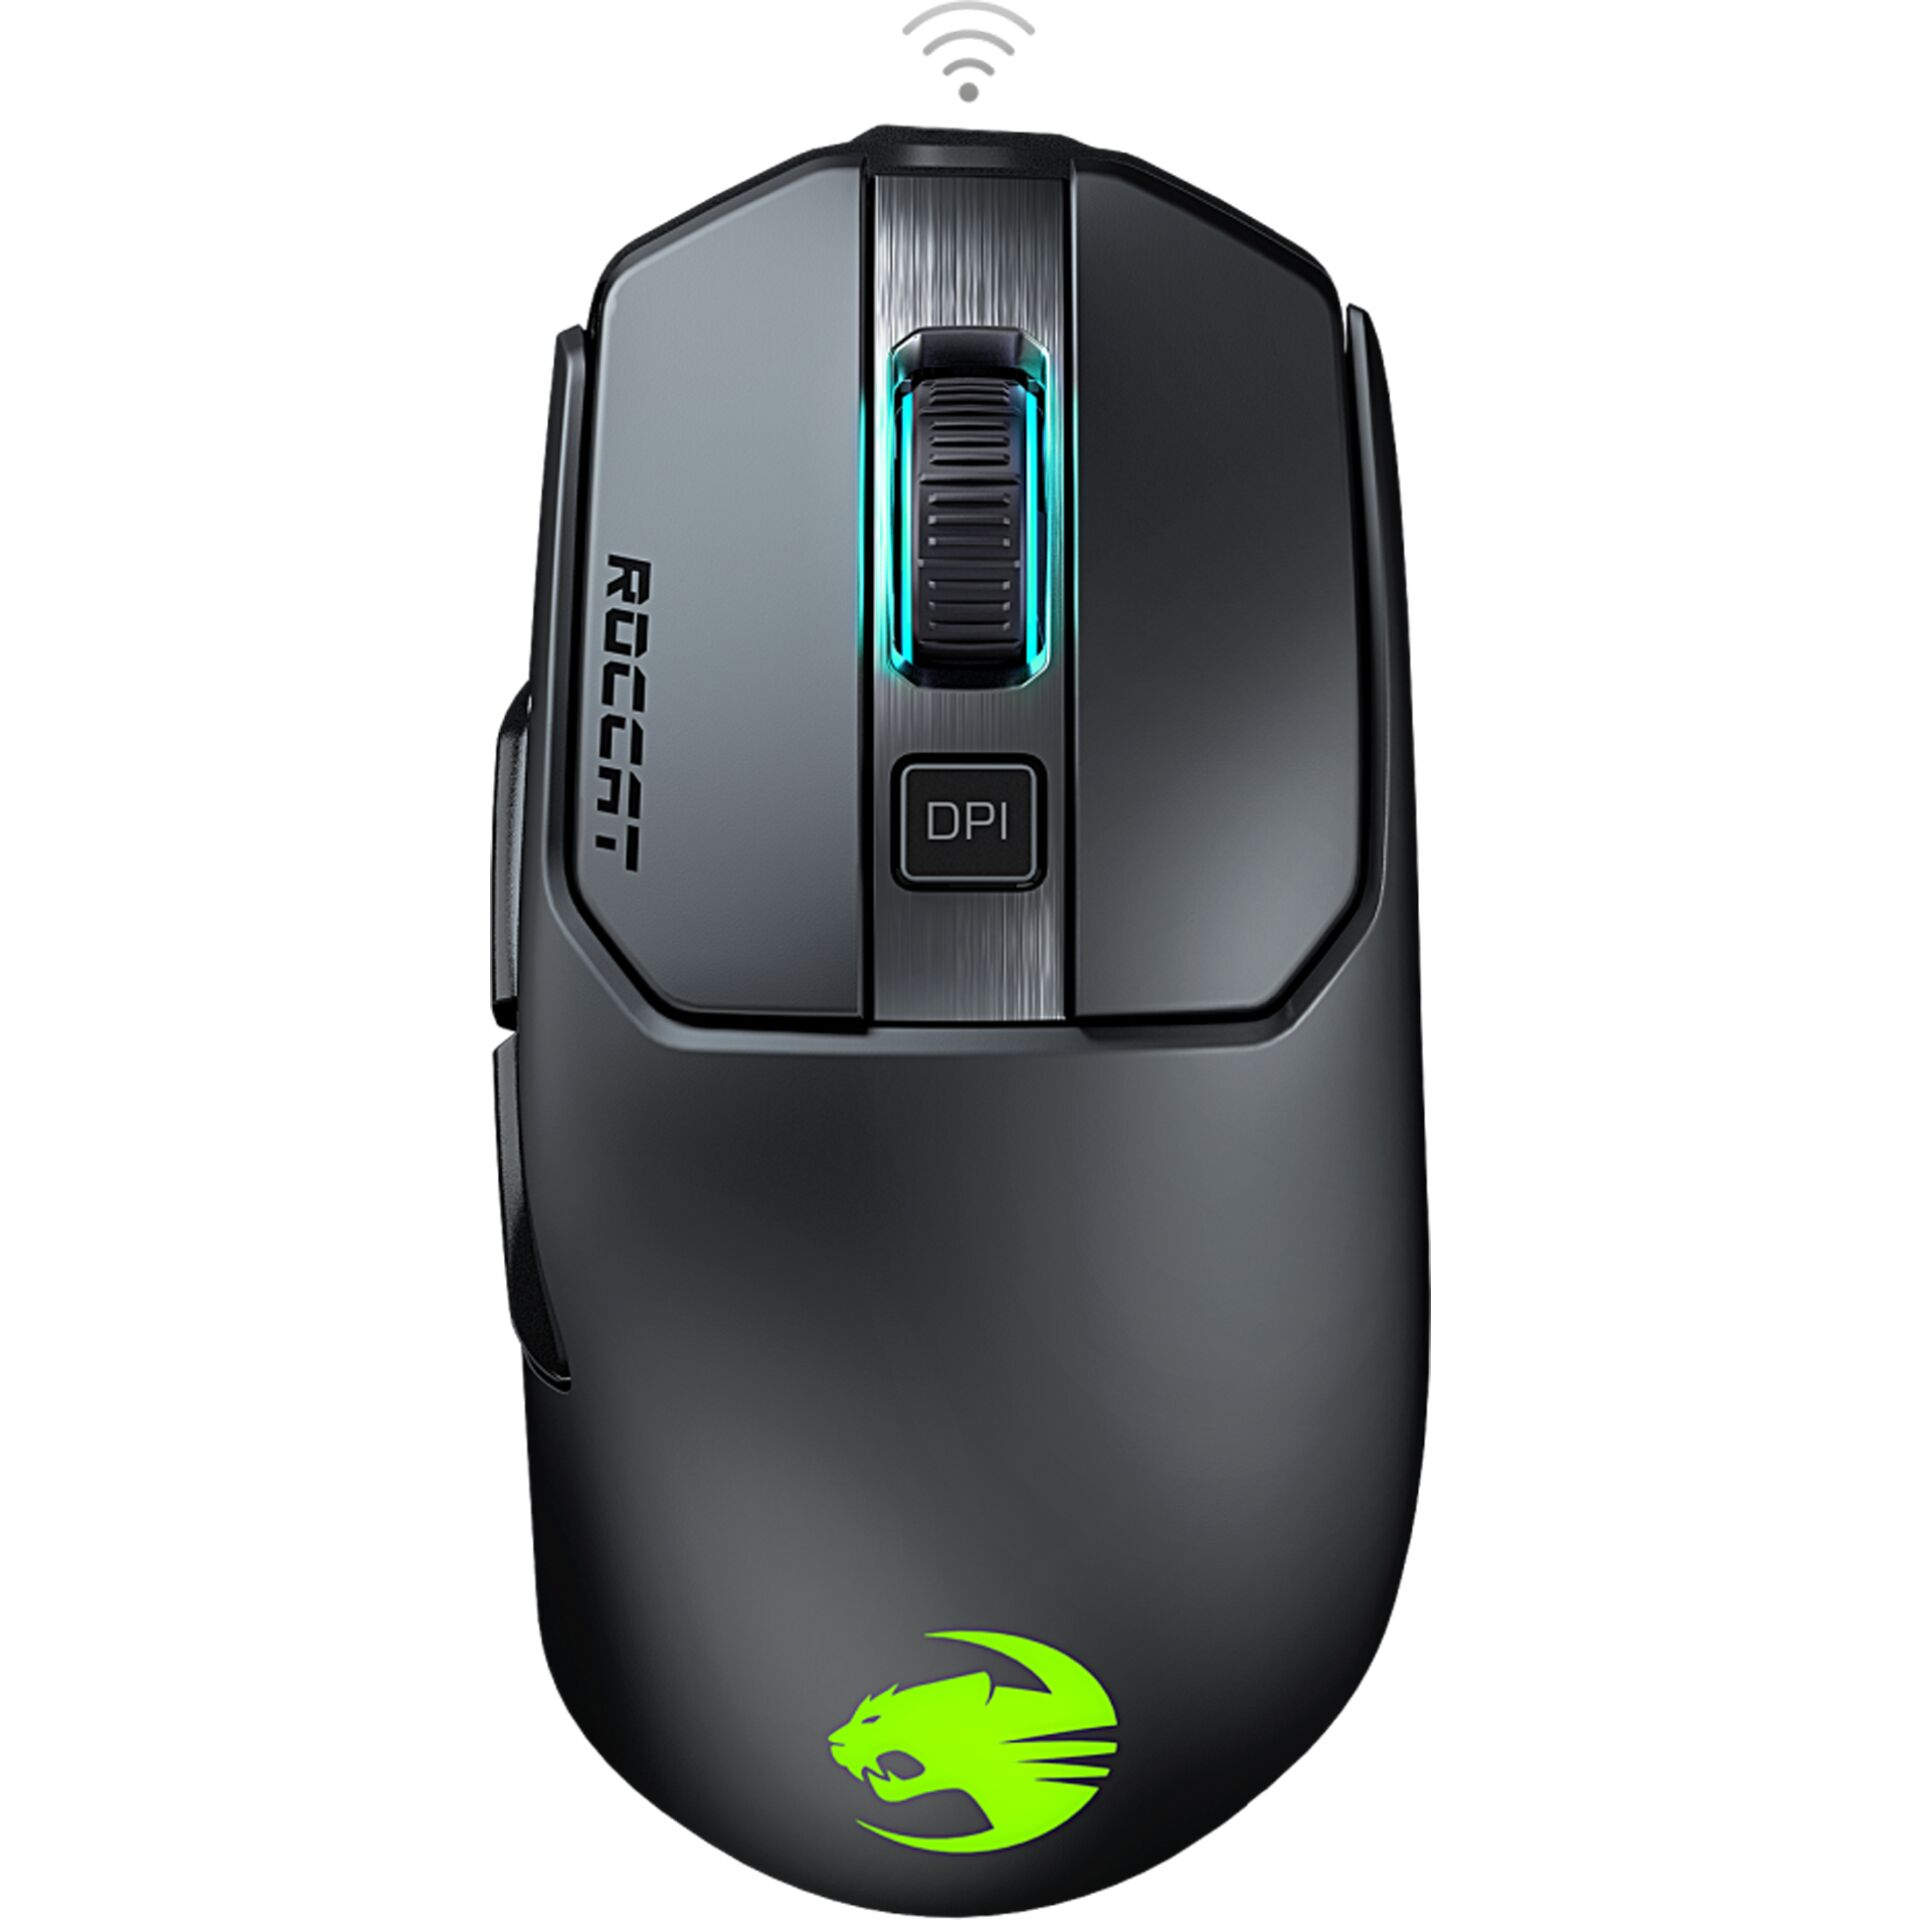 Roccat Kain 200 AIMO RGB kabellos Gaming mouse black